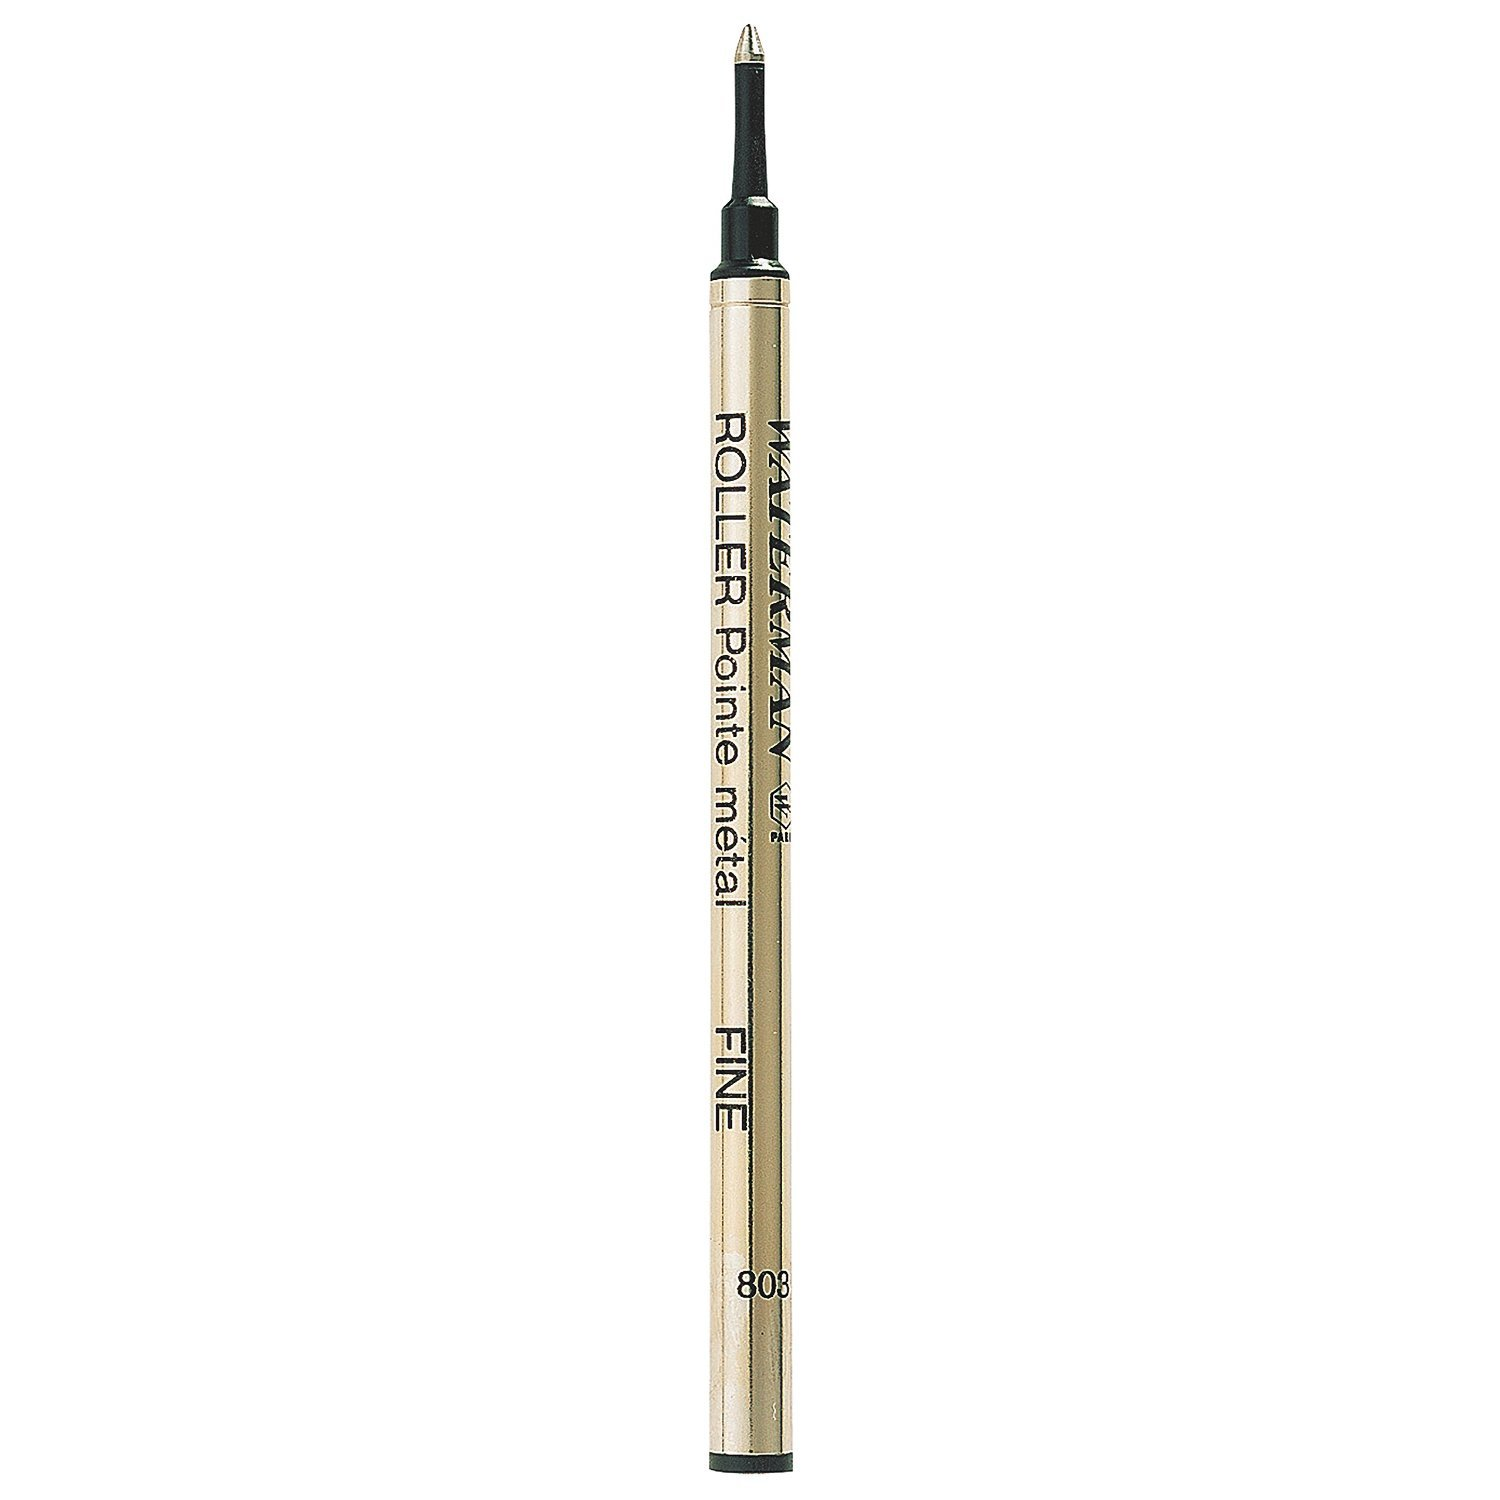 Waterman Pen Company : Rollerball Pen Refill, Fine Point,...